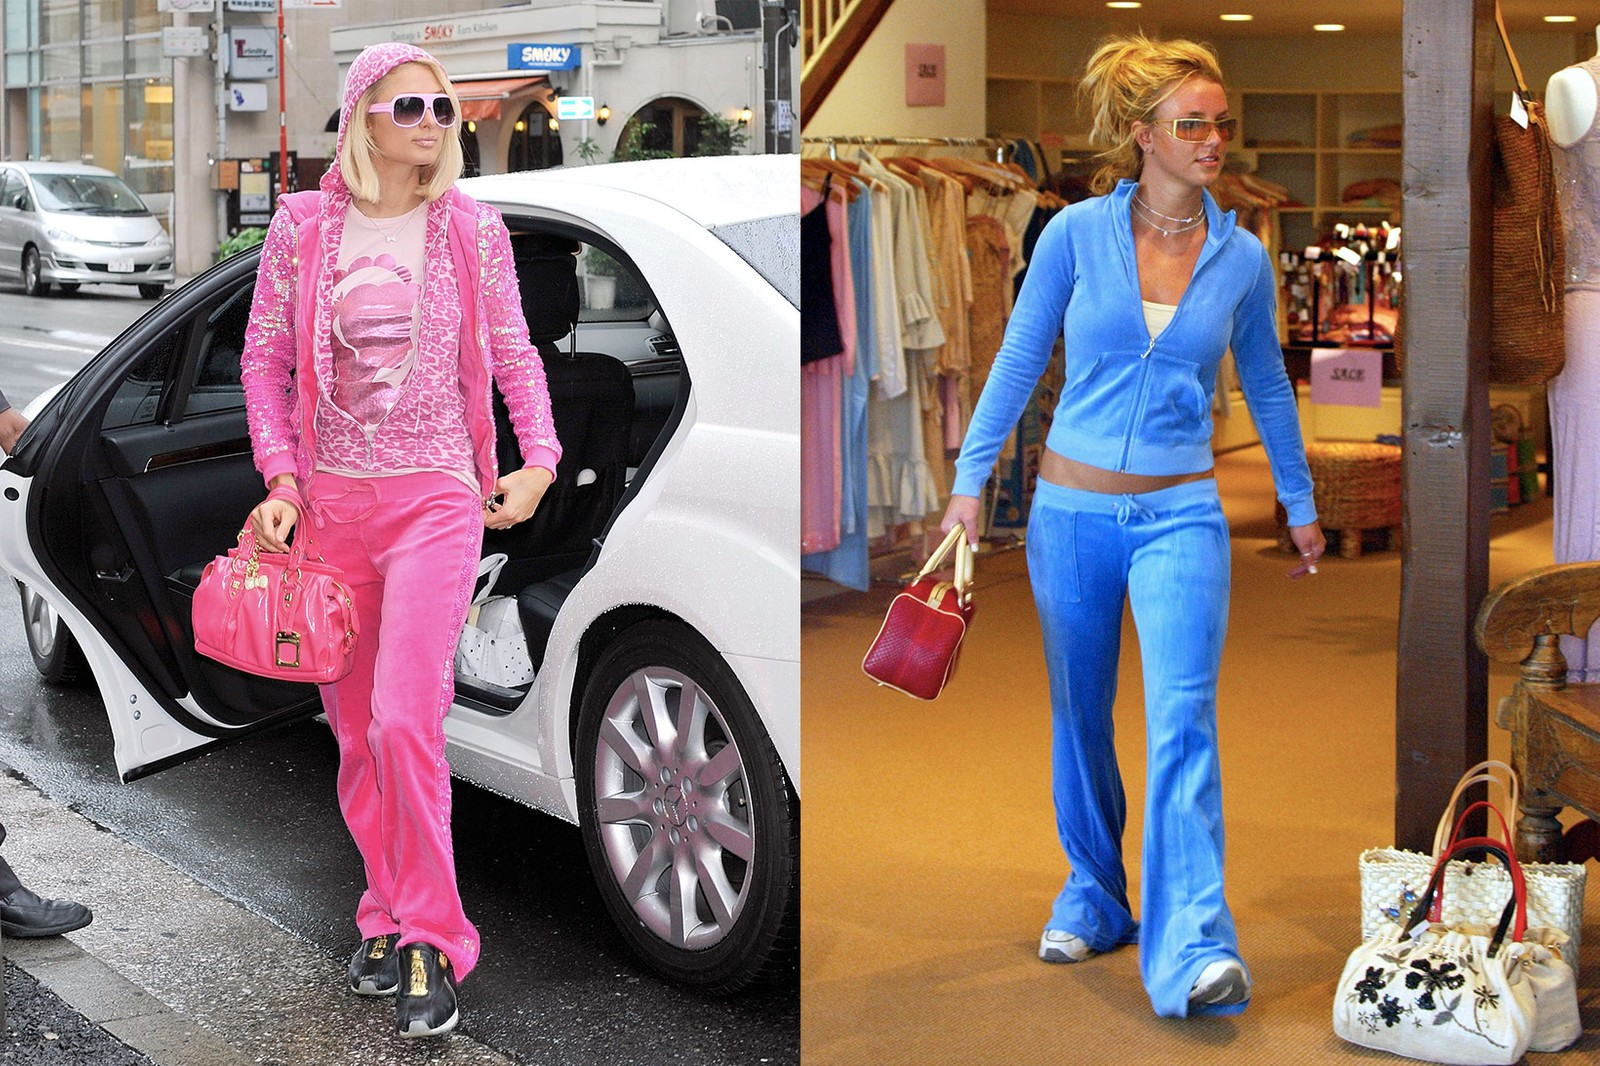 mary kate ashley olsen twins sisters nsync launch party celebrity album red carpet halter top choker necklaces jewelry paris hilton velour tracksuit pink shades